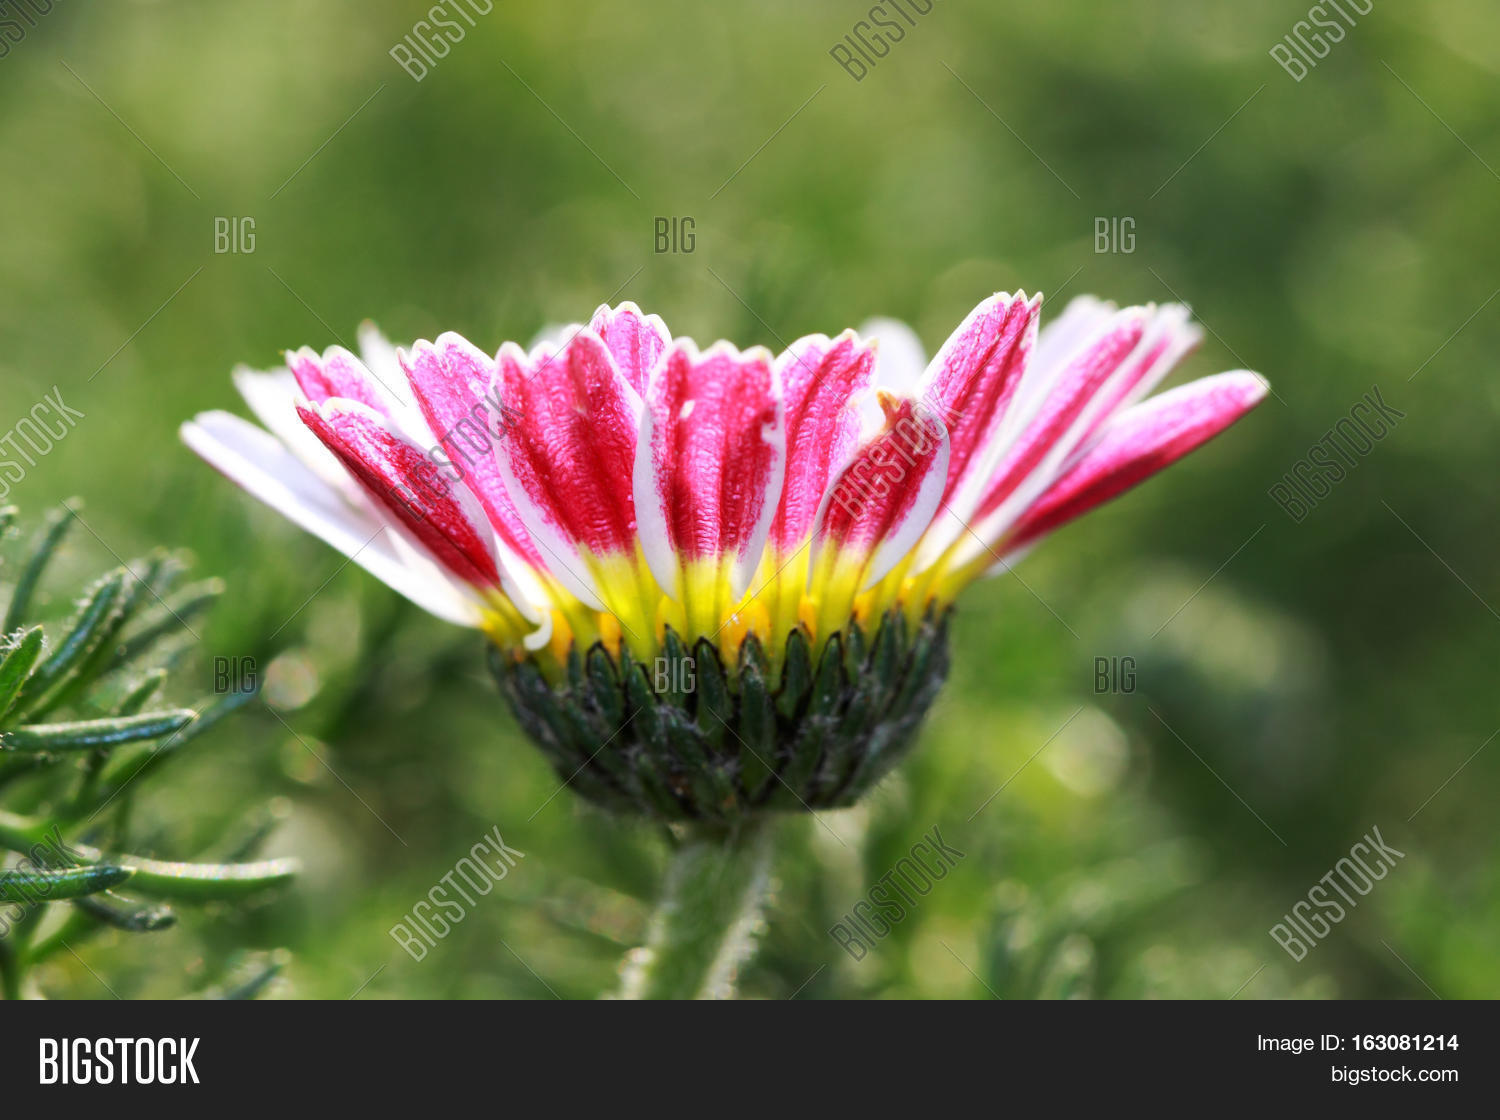 Small Flower Daisy Image Photo Free Trial Bigstock